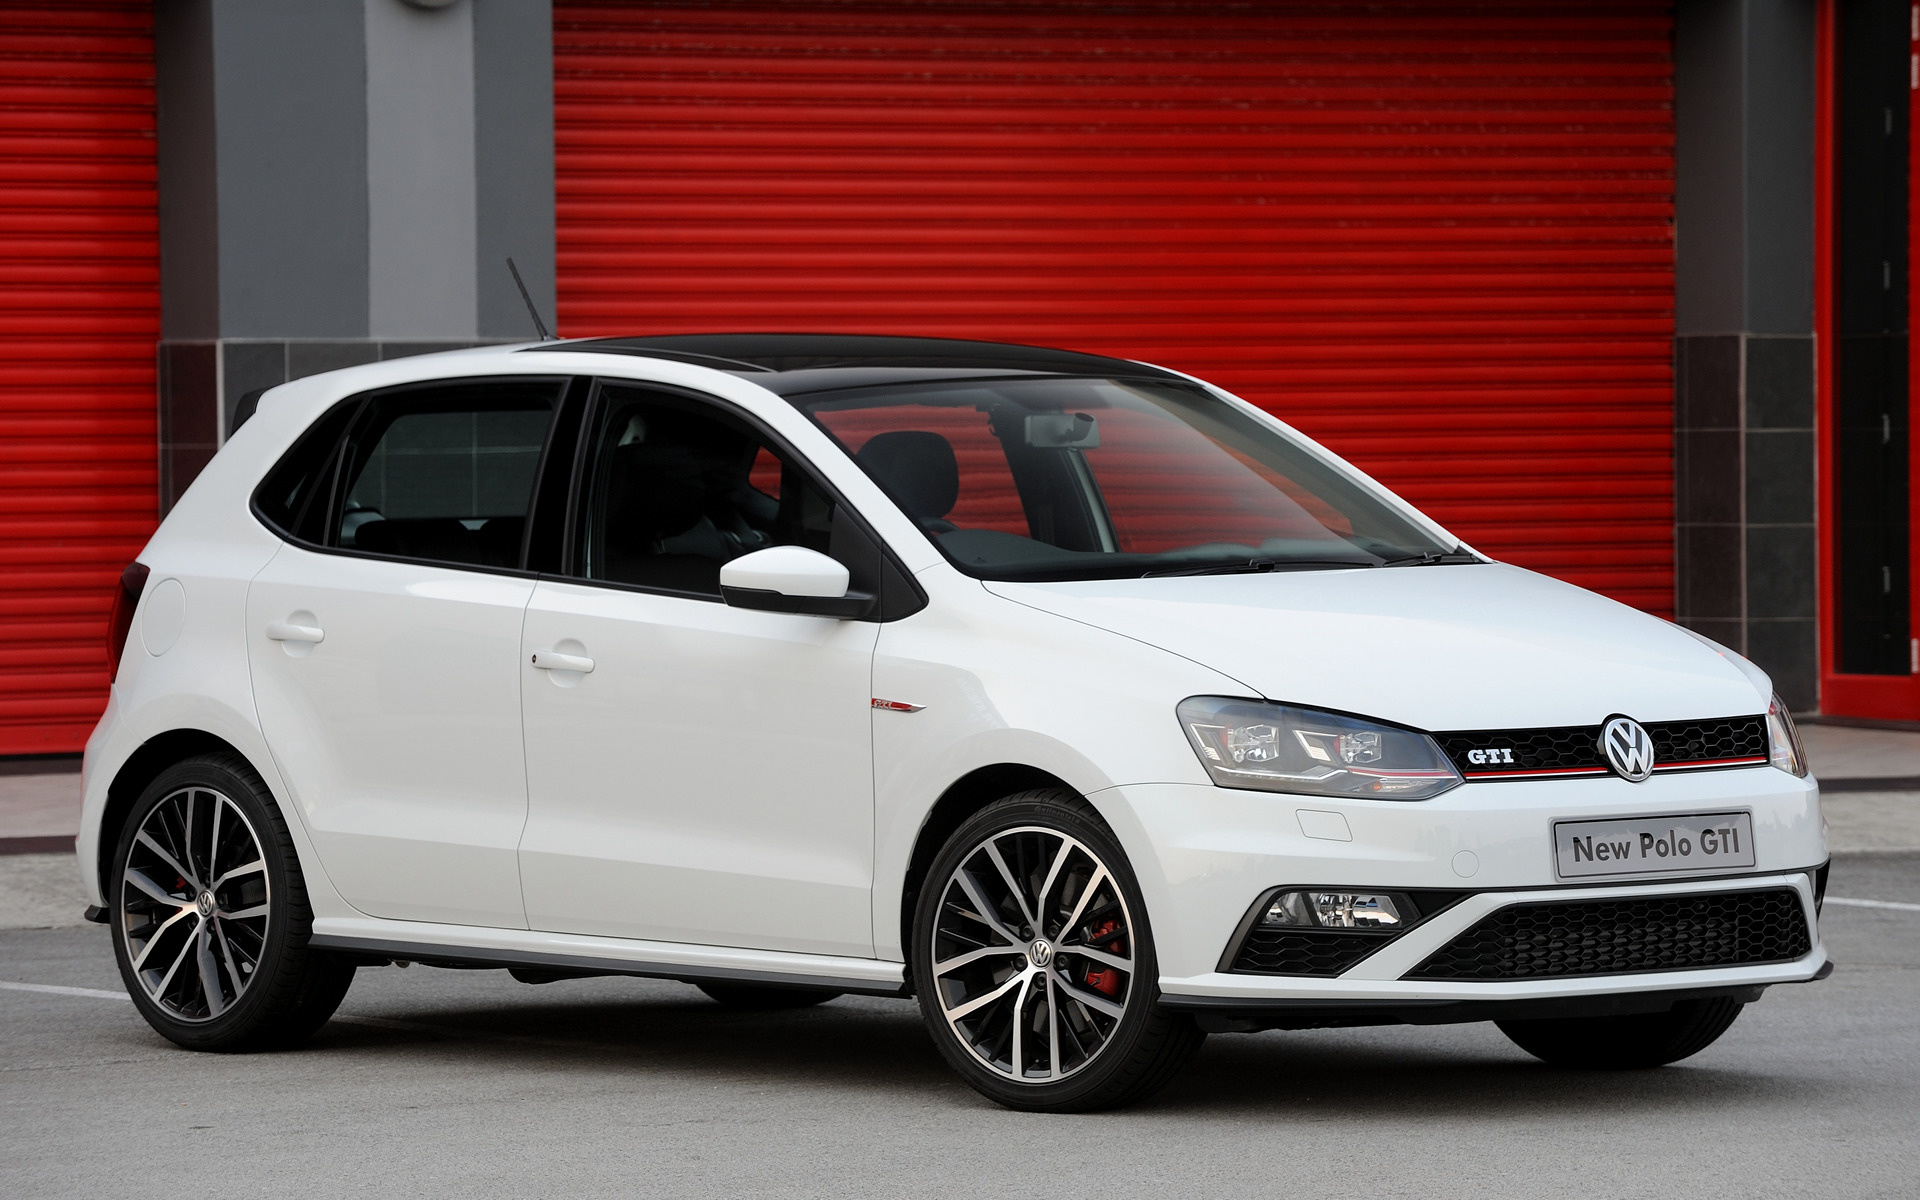 Le Meilleur 2015 Volkswagen Polo Gti 5 Door Za Wallpapers And Hd Ce Mois Ci